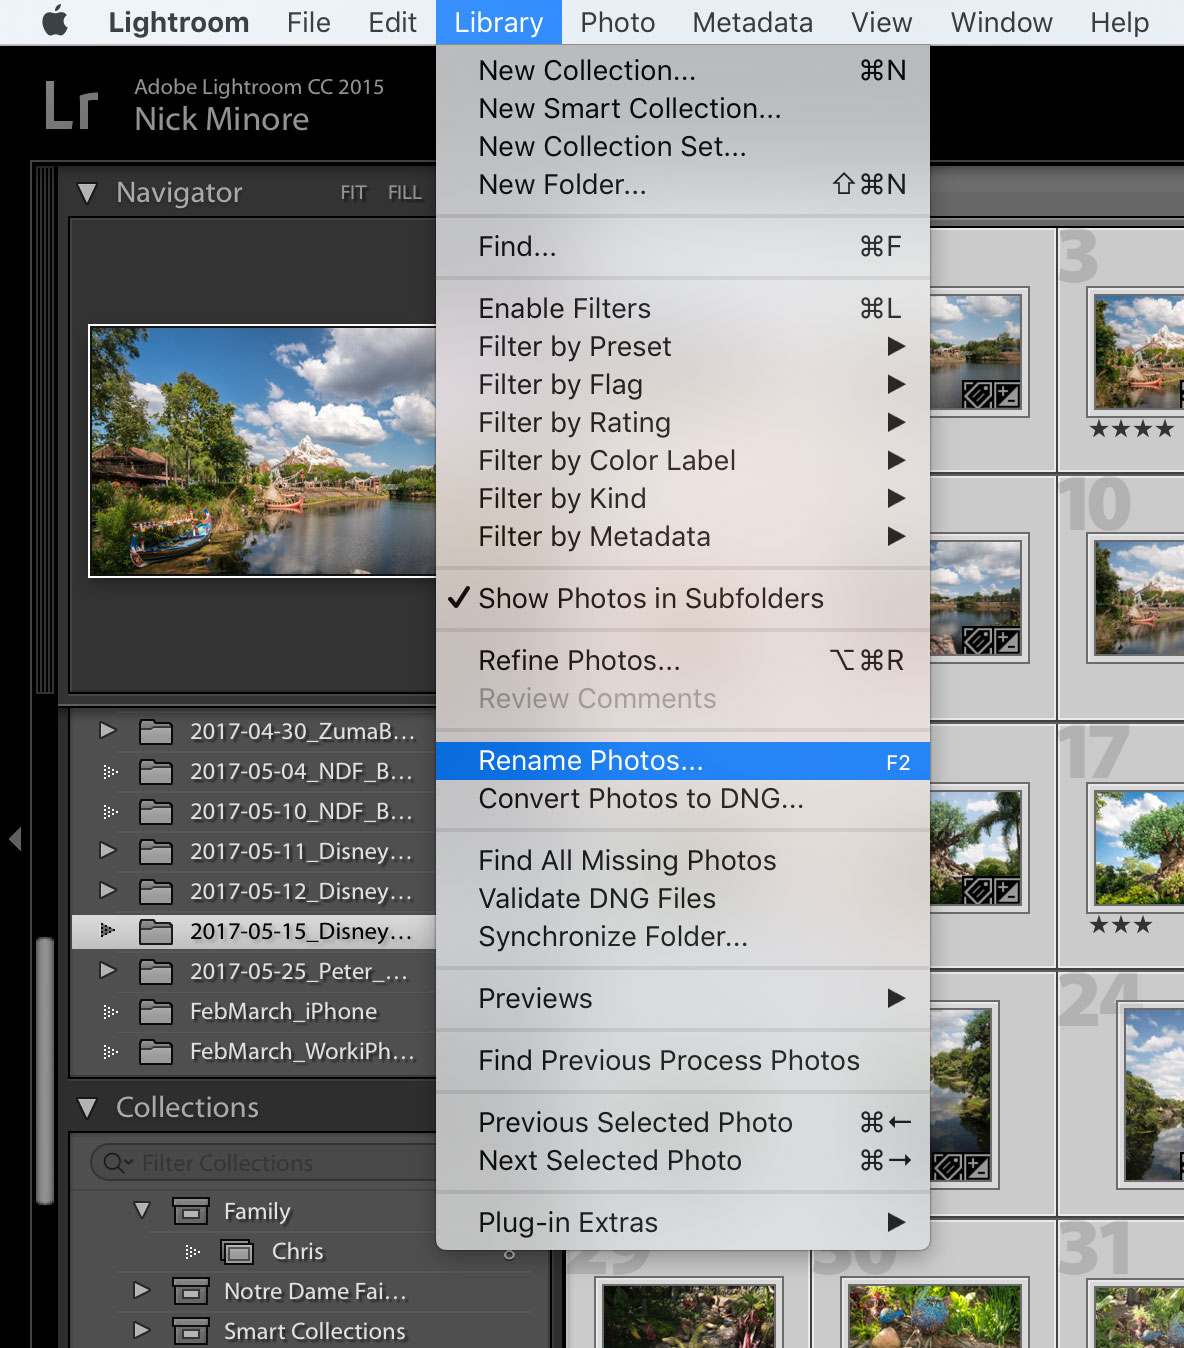 Why is Lightroom Importing my Images out of Order? | Photofocus